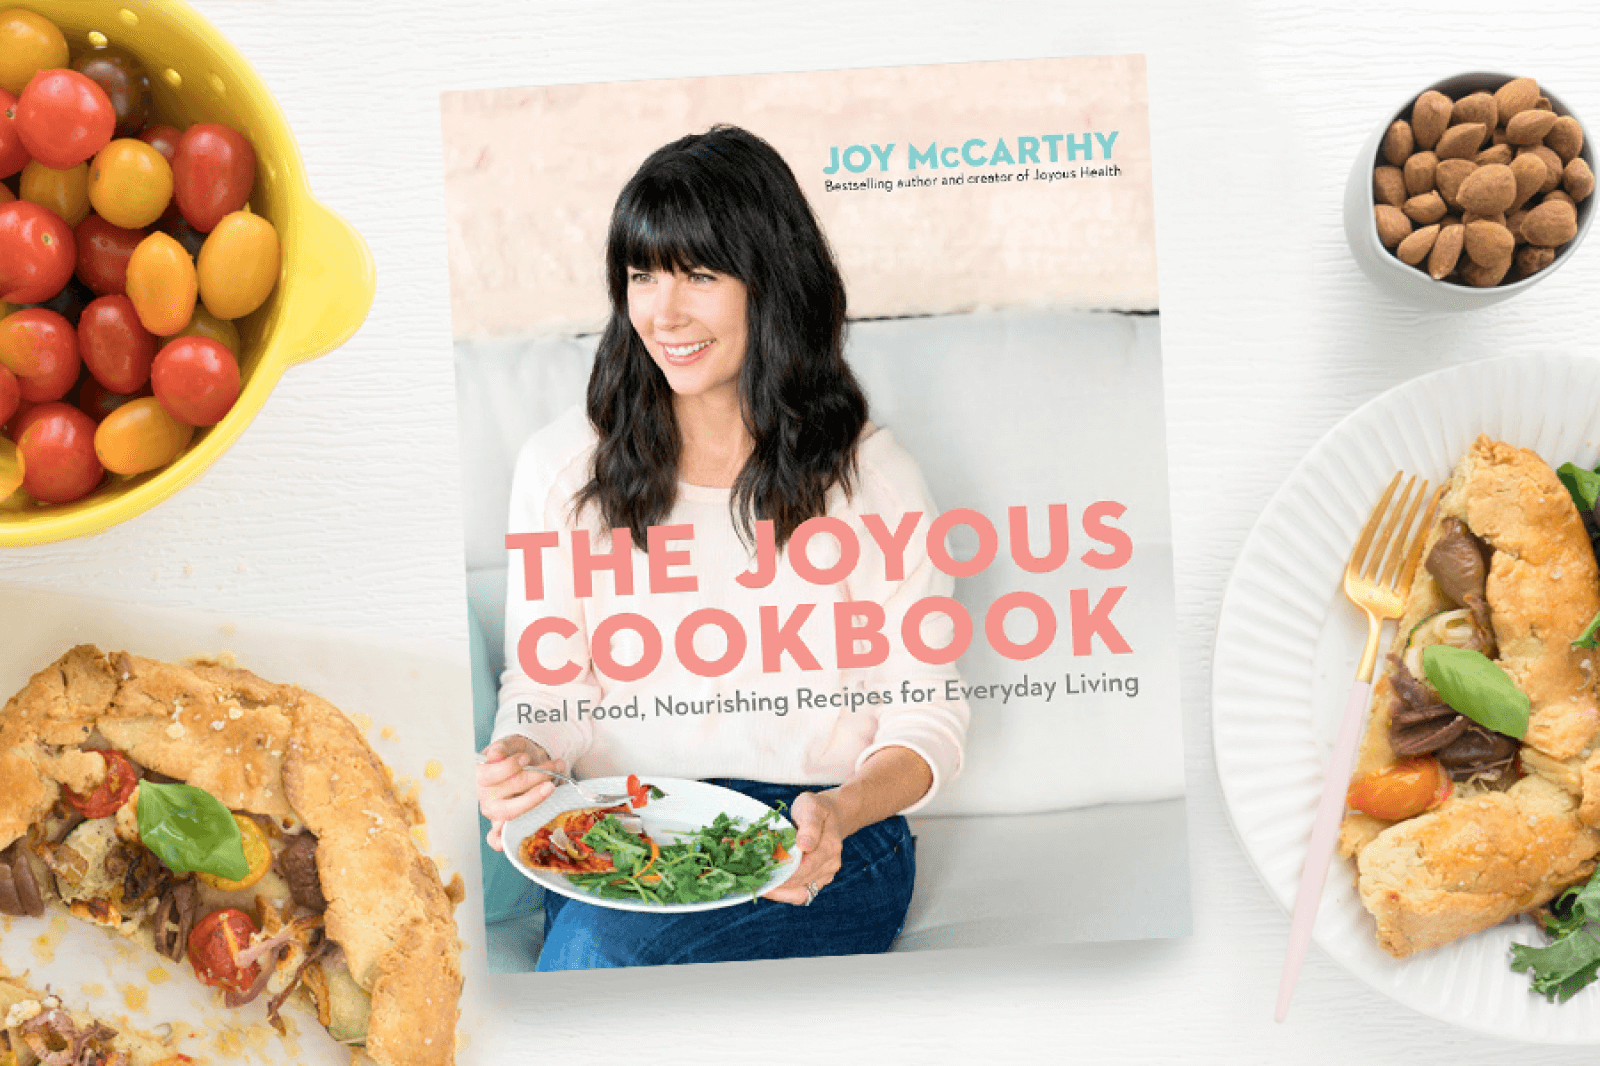 The Joyous Cookbook: Real Food, Nourishing Recipes for Everyday Living thumbnail